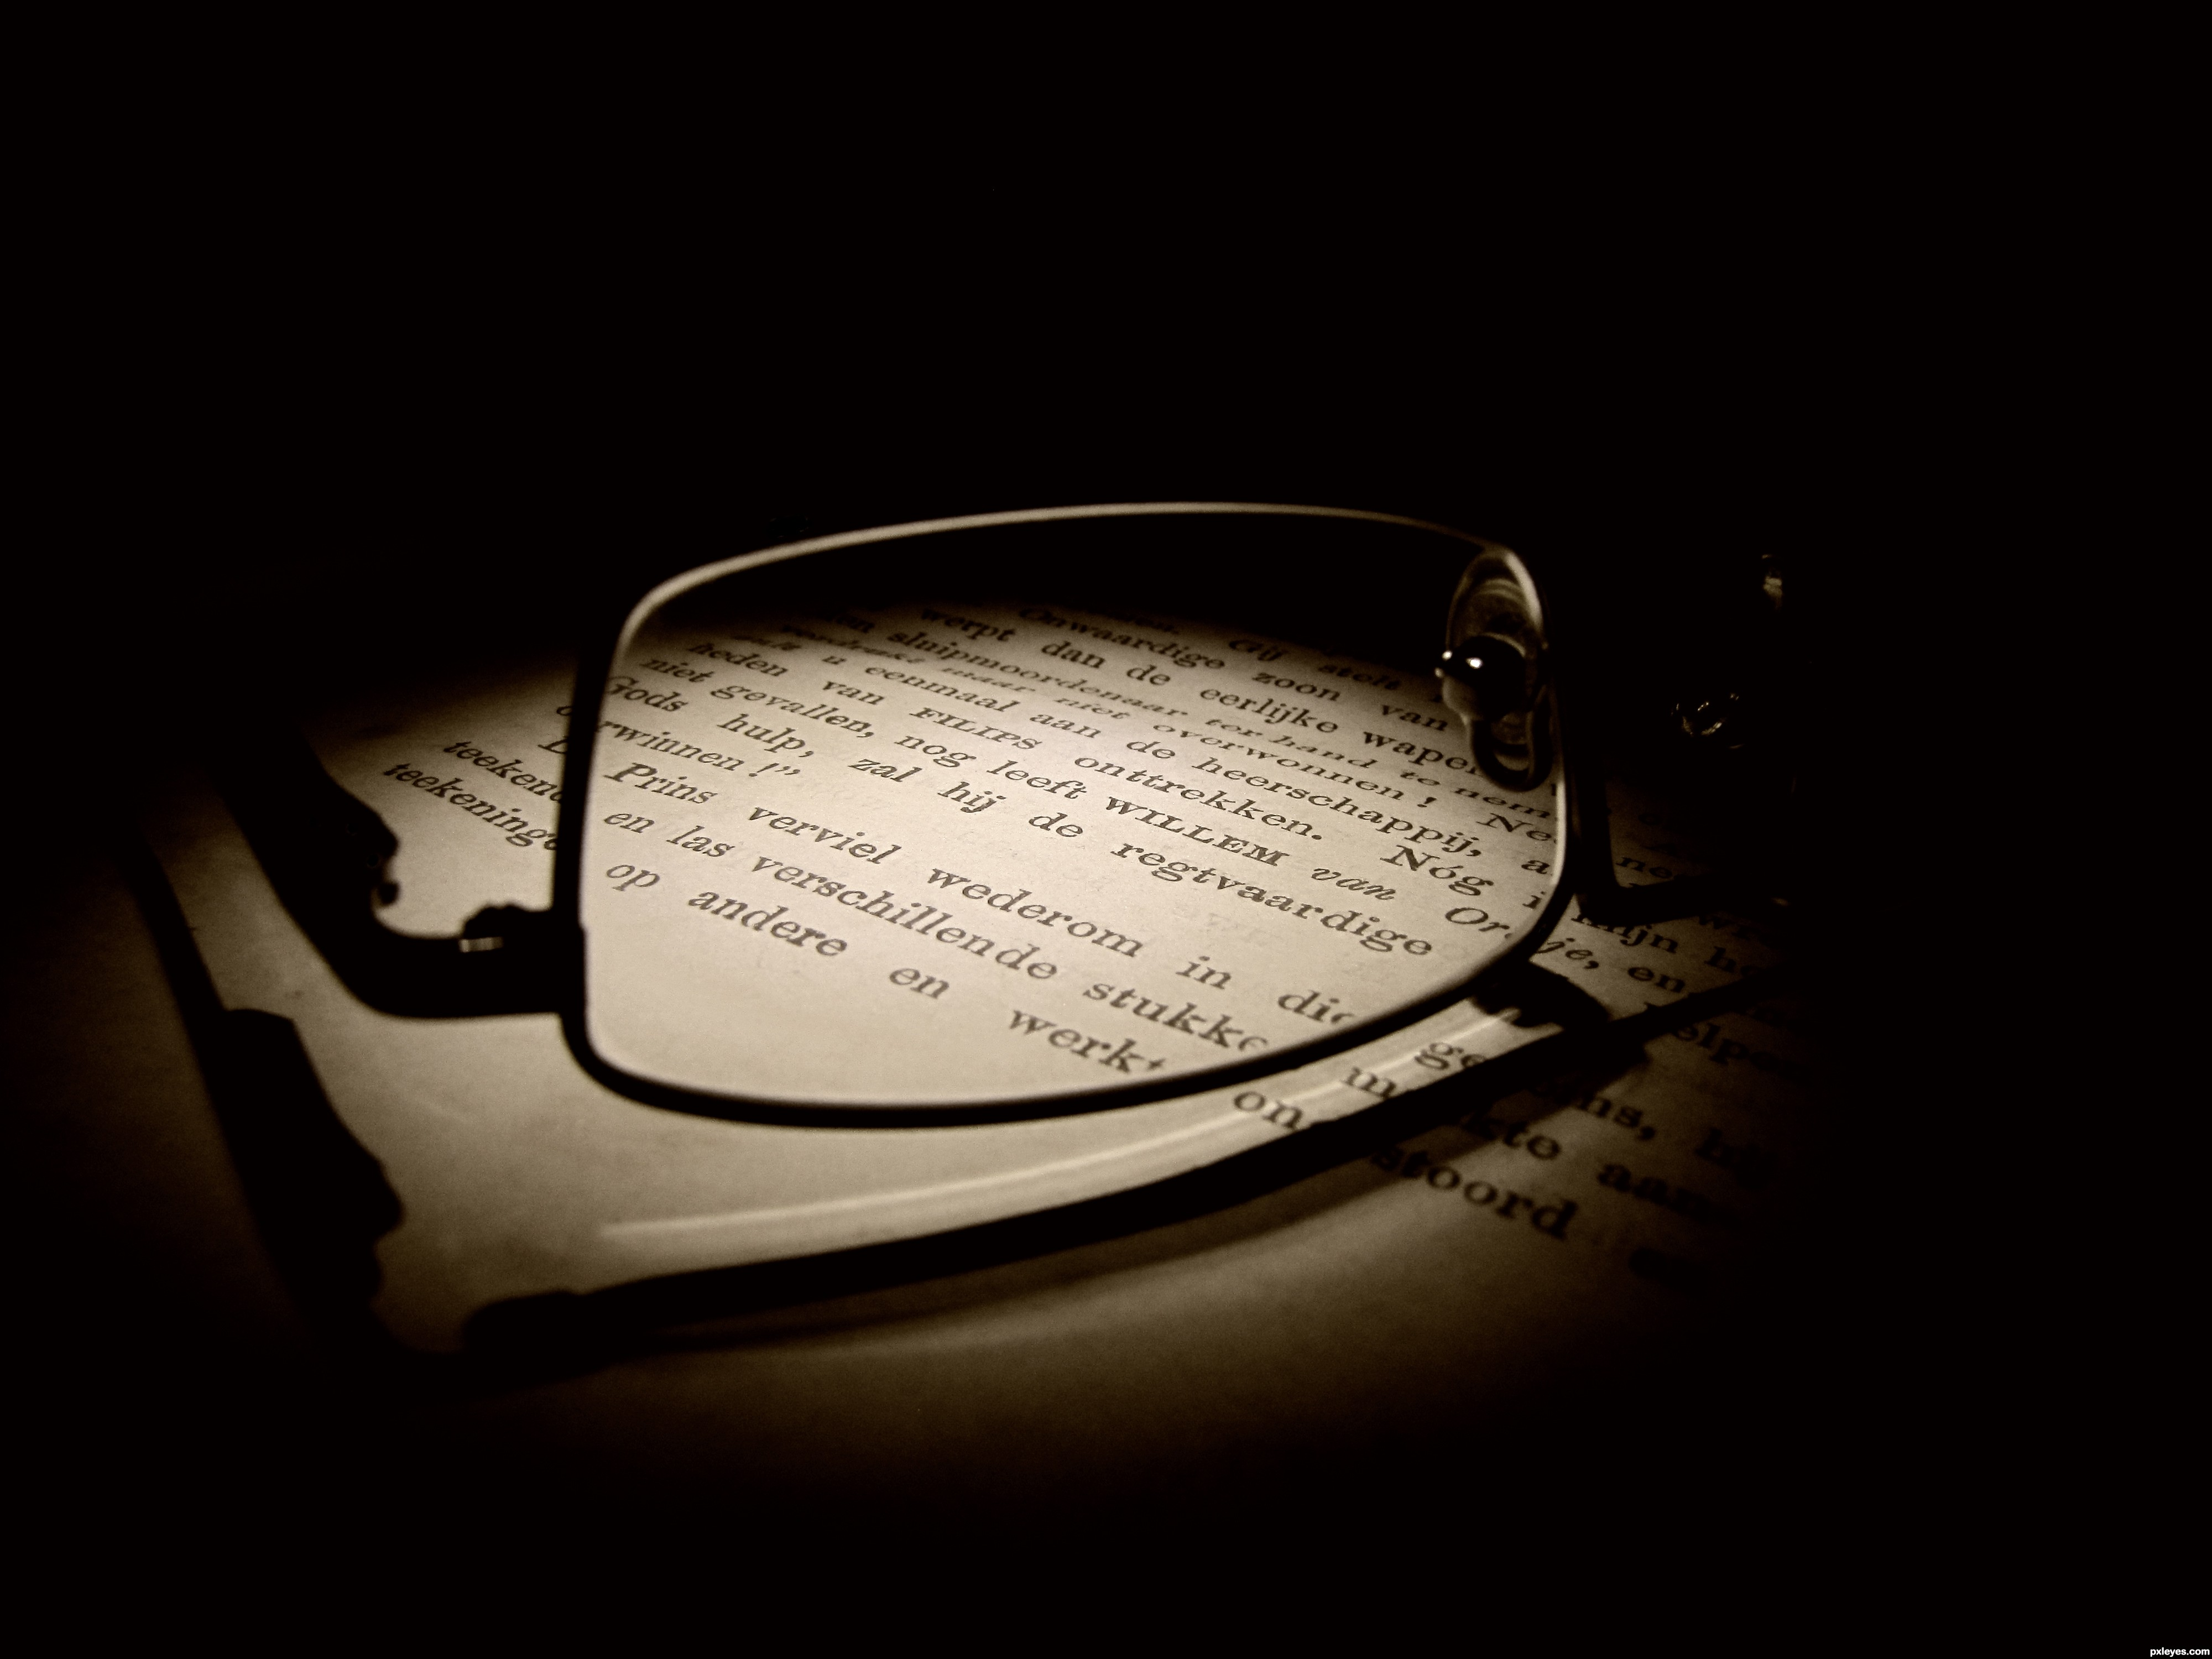 the book picture by robvdn for through glasses